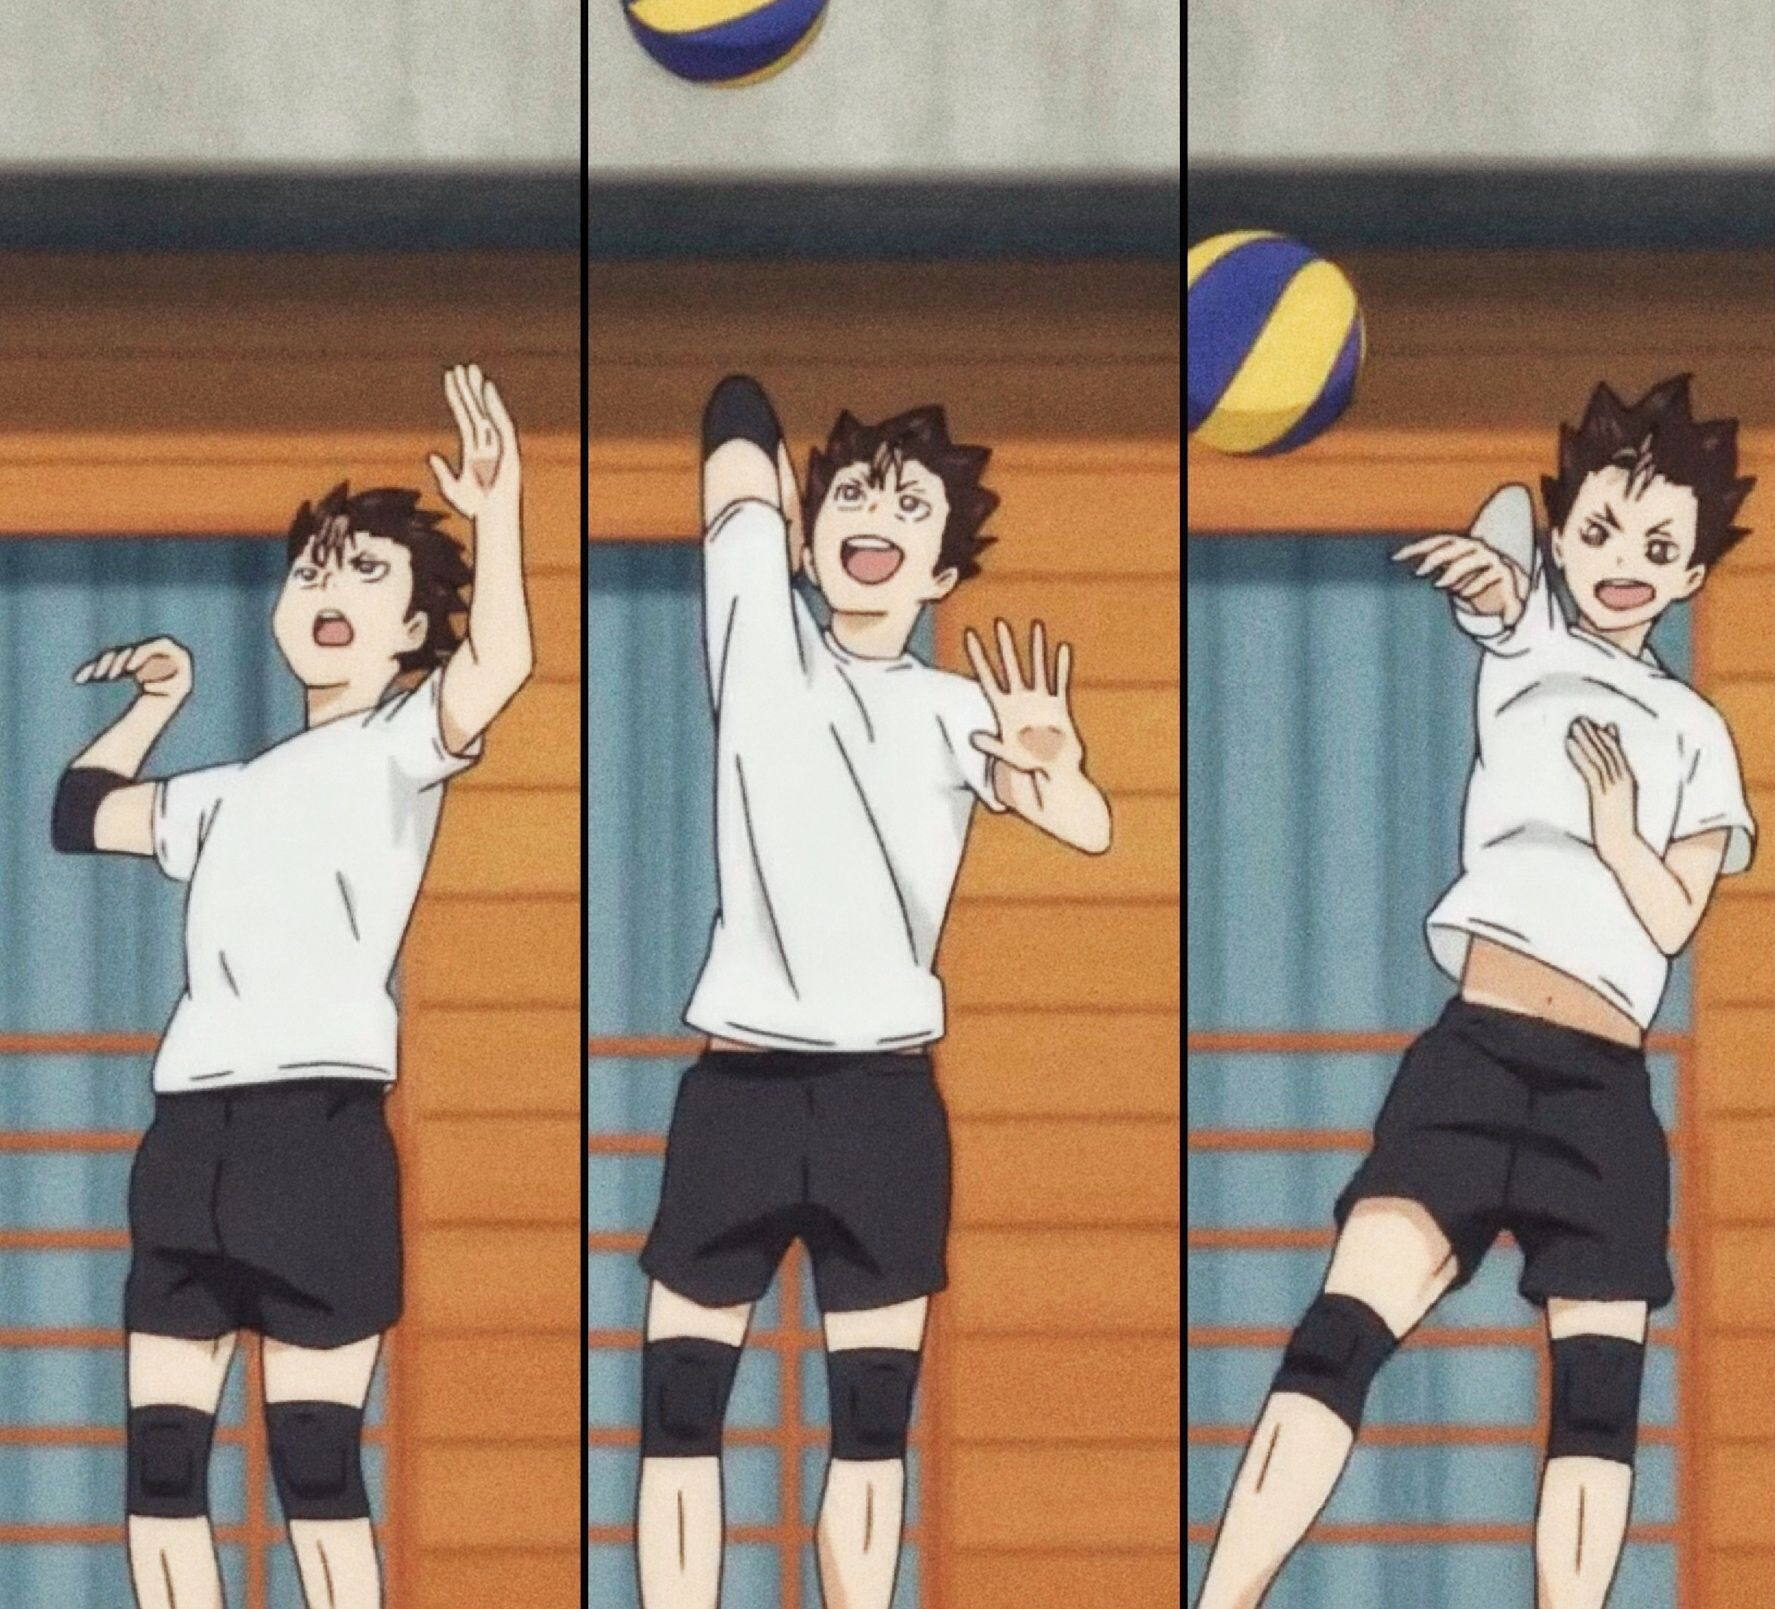 Why Does Nishinoya Seem To Have Shorts On Backwards In 2020 Nishinoya Haikyuu Nishinoya Nishinoya Yuu